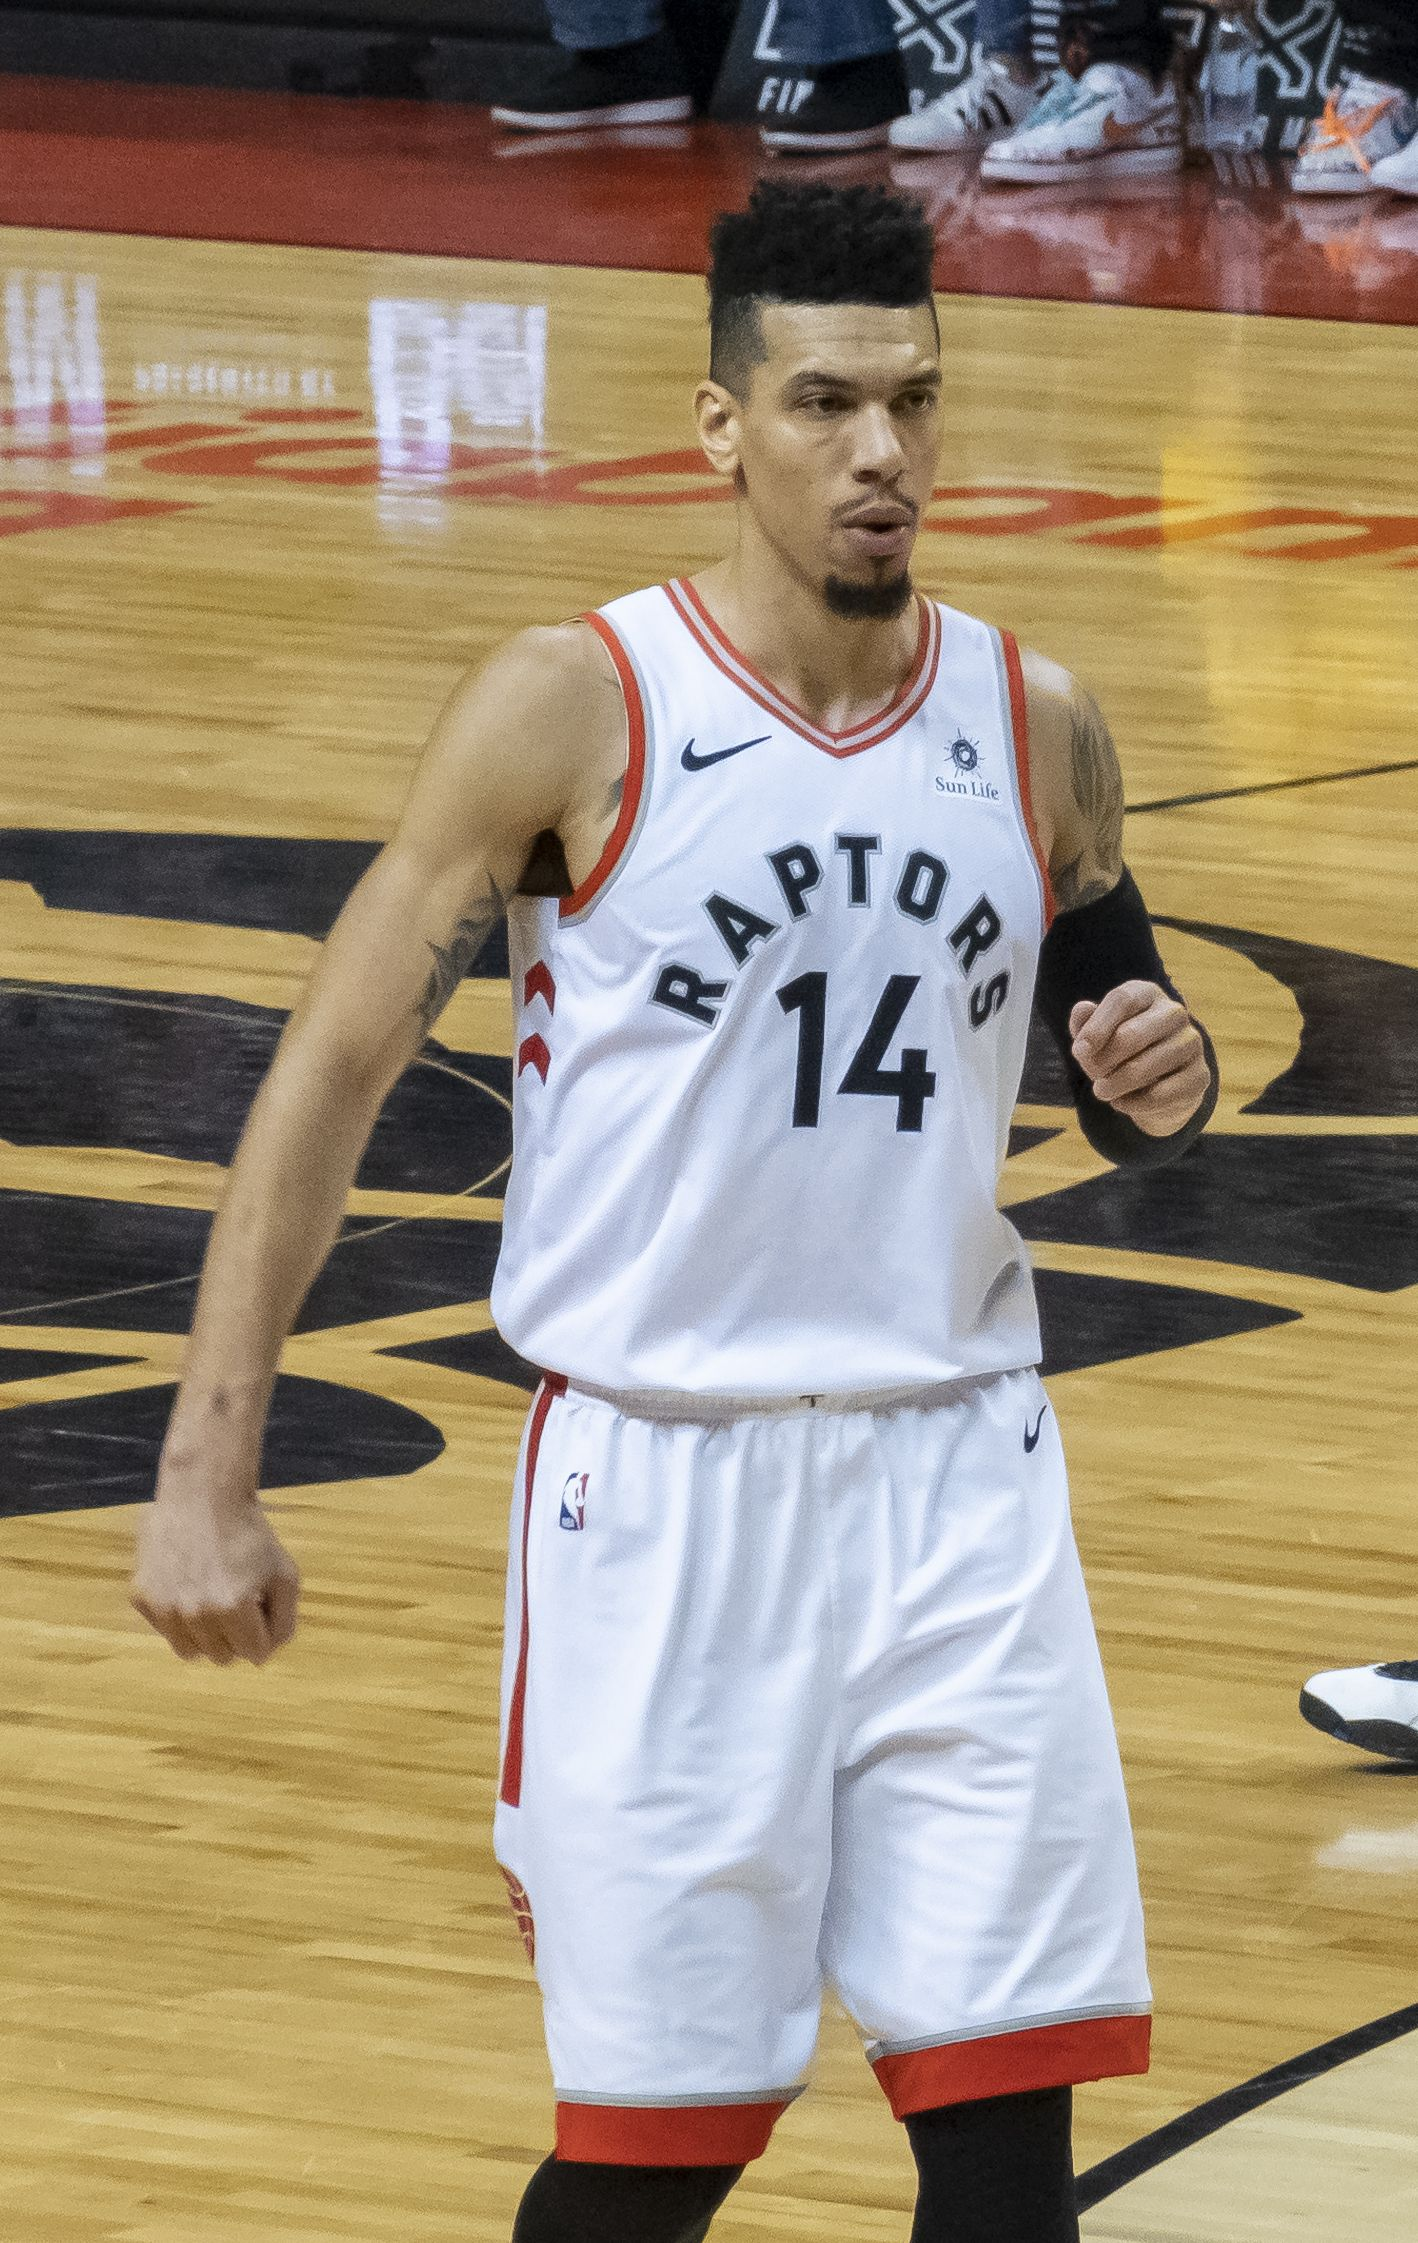 Danny Green Basketball Wikipedia Is The Perfect High Quality Nba Basketball Wallpaper With Hd Resolution Click Image Or Visit Button F Basketball Photography